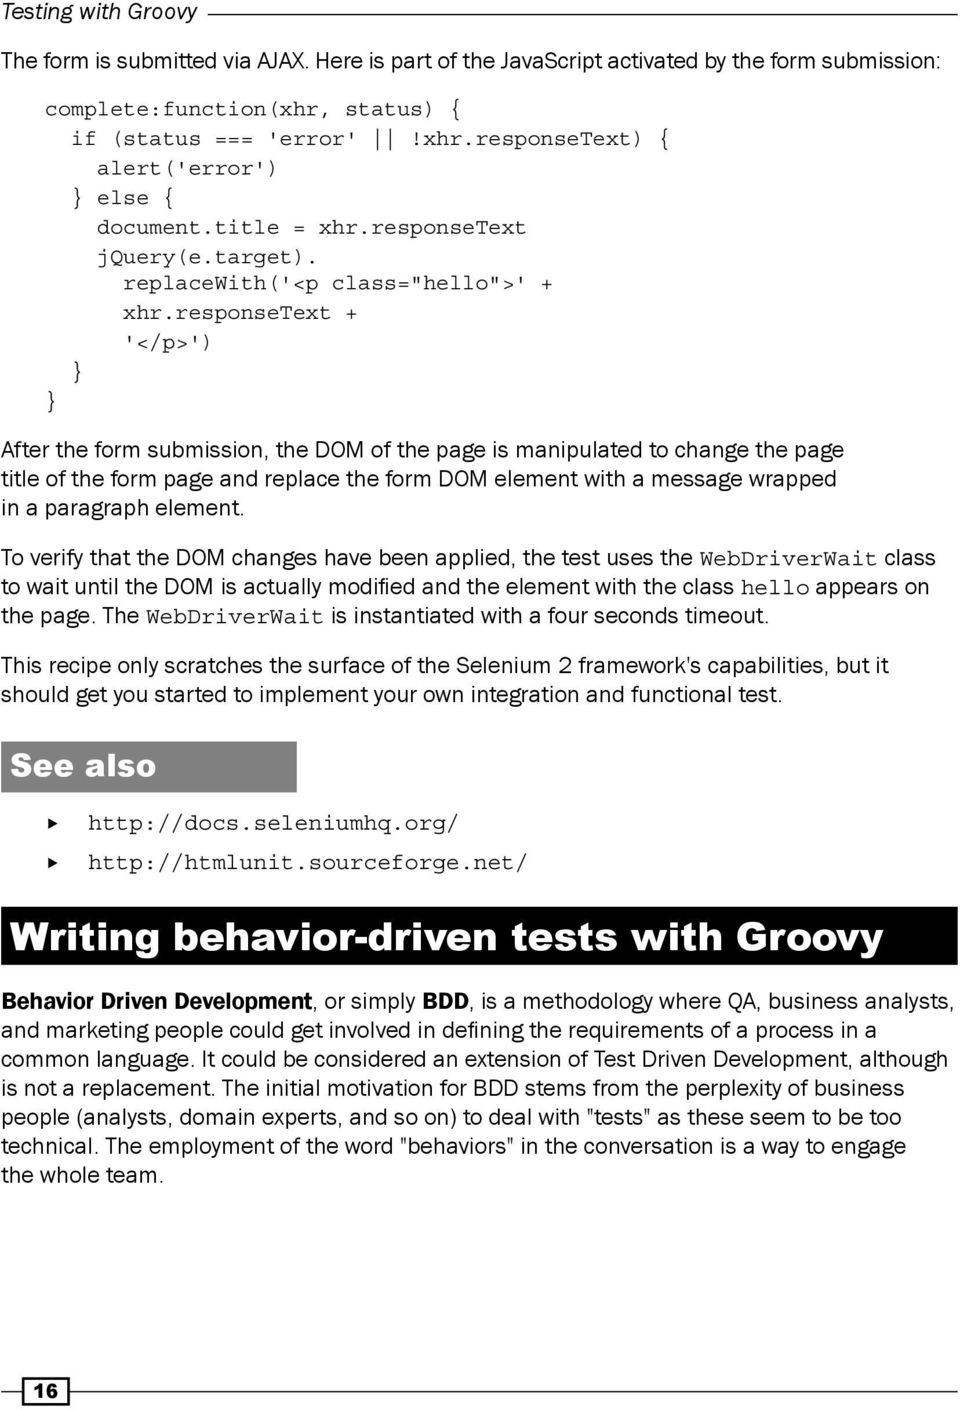 11 Testing with Groovy - PDF